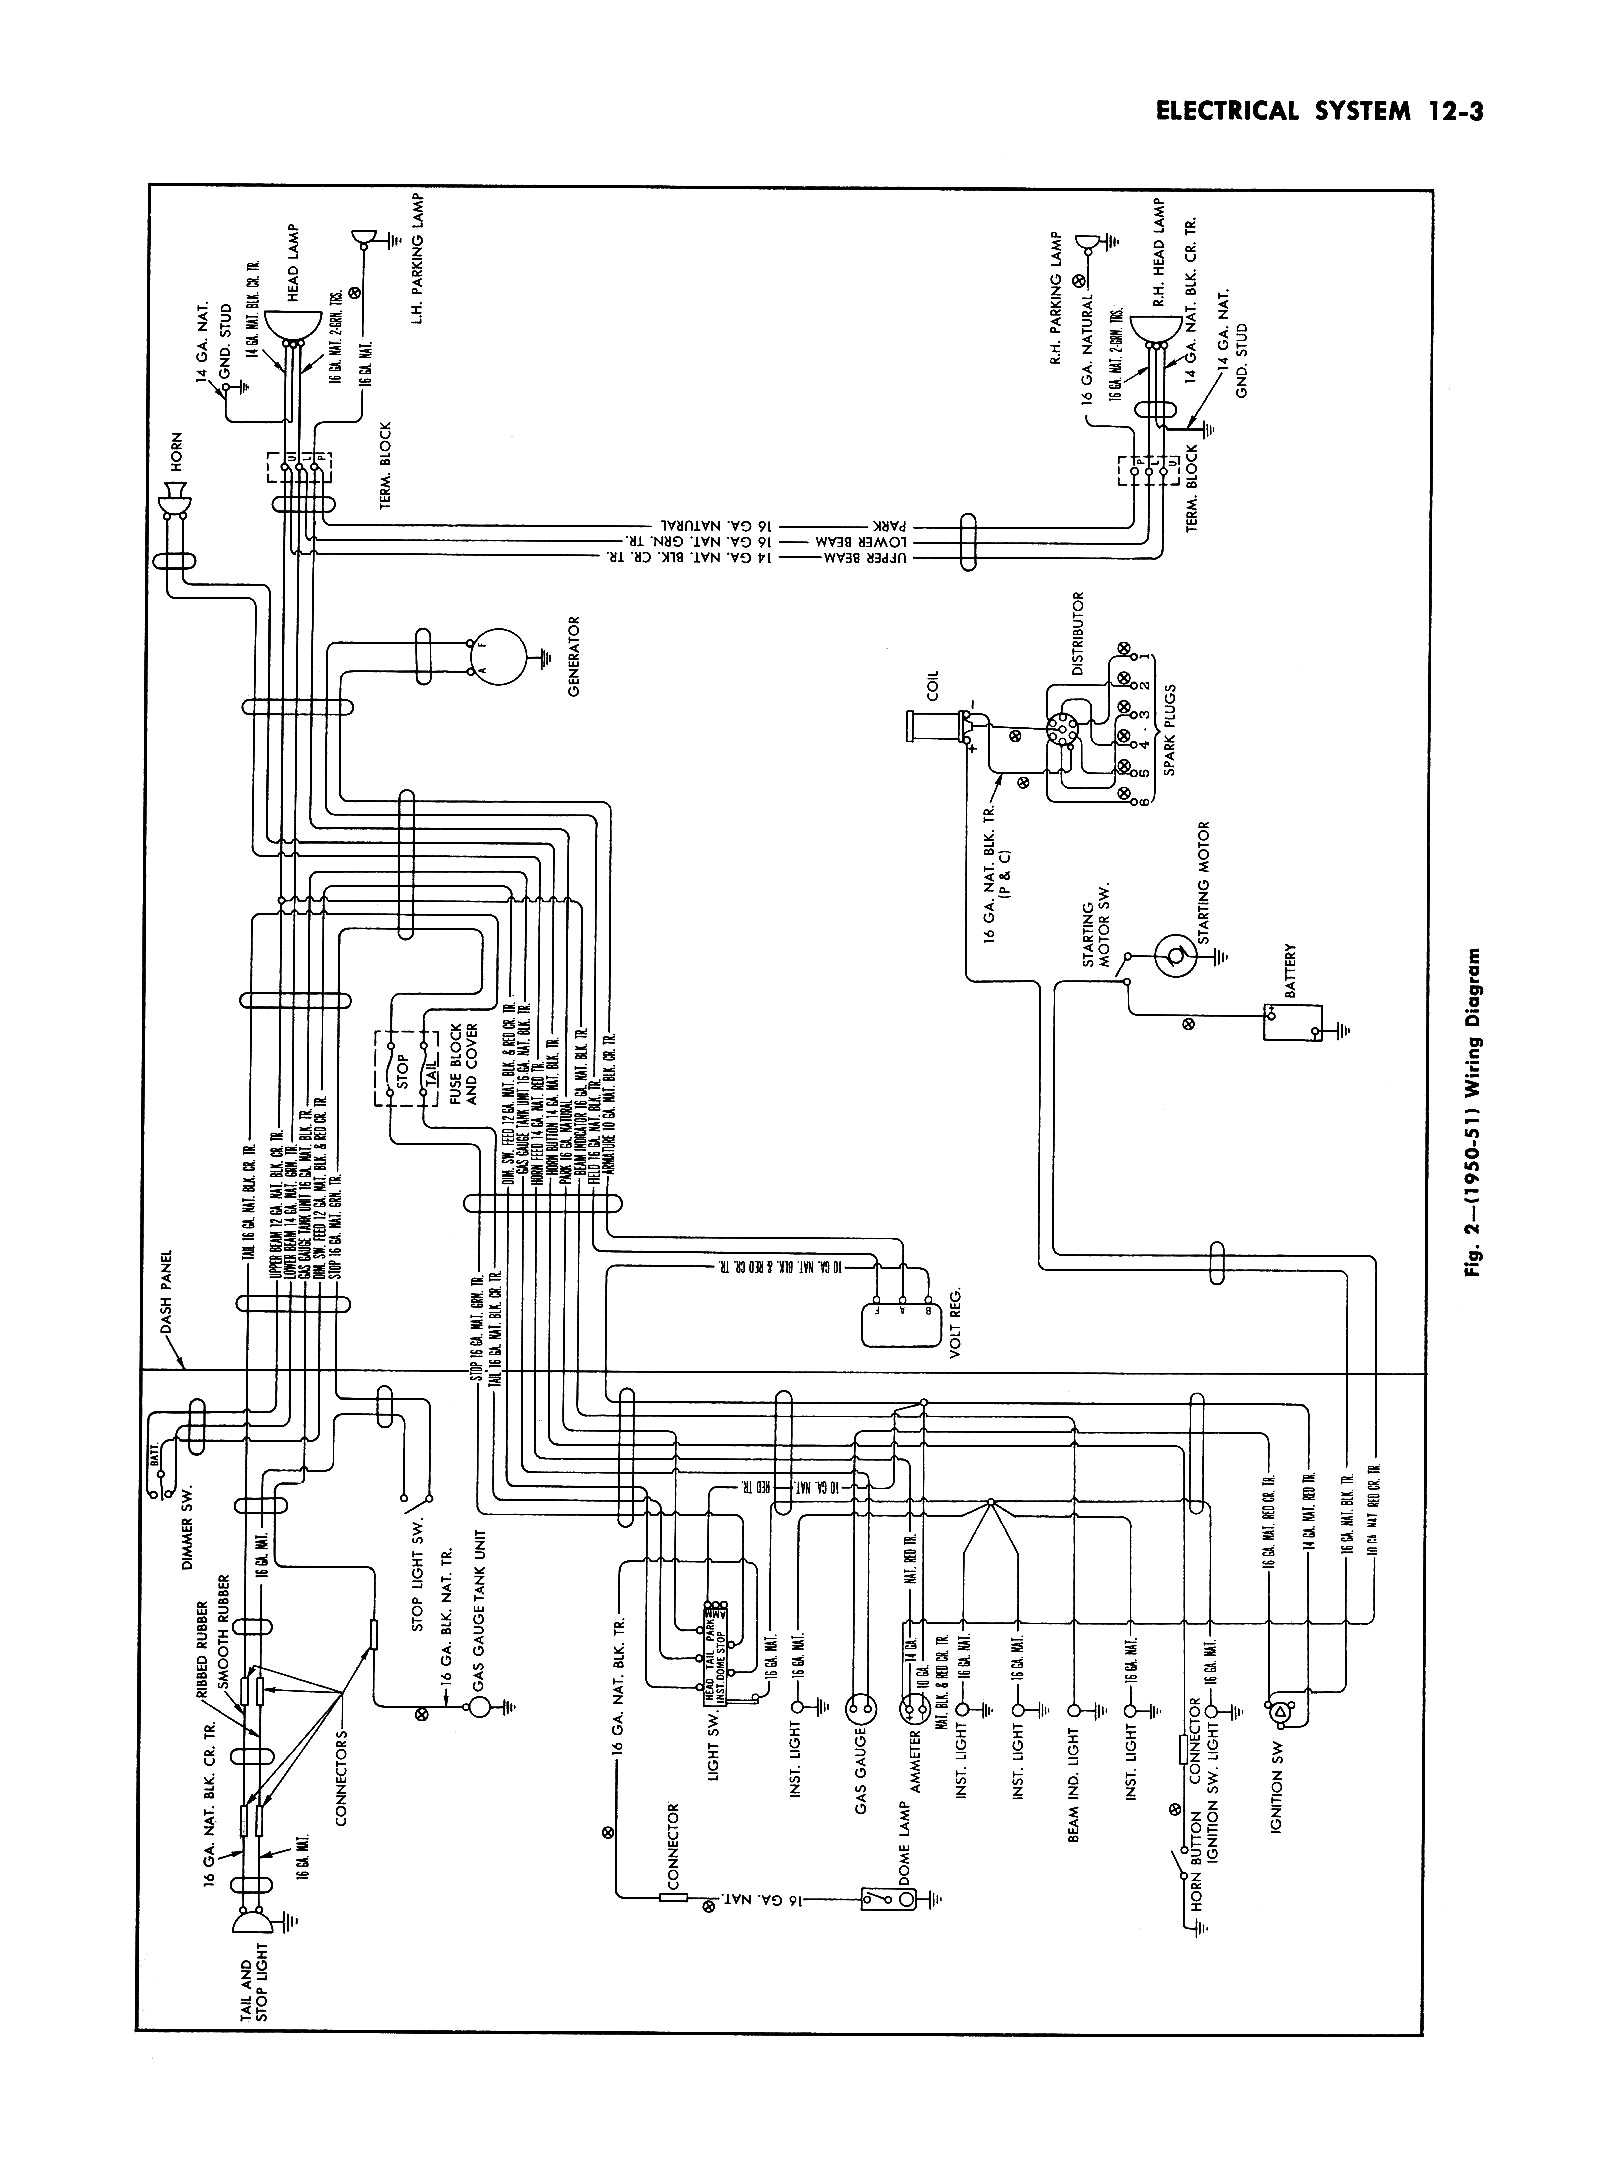 hight resolution of ididit turn signal switch wiring diagram dakota digital ididit wiring harness time delay switch wiring diagram